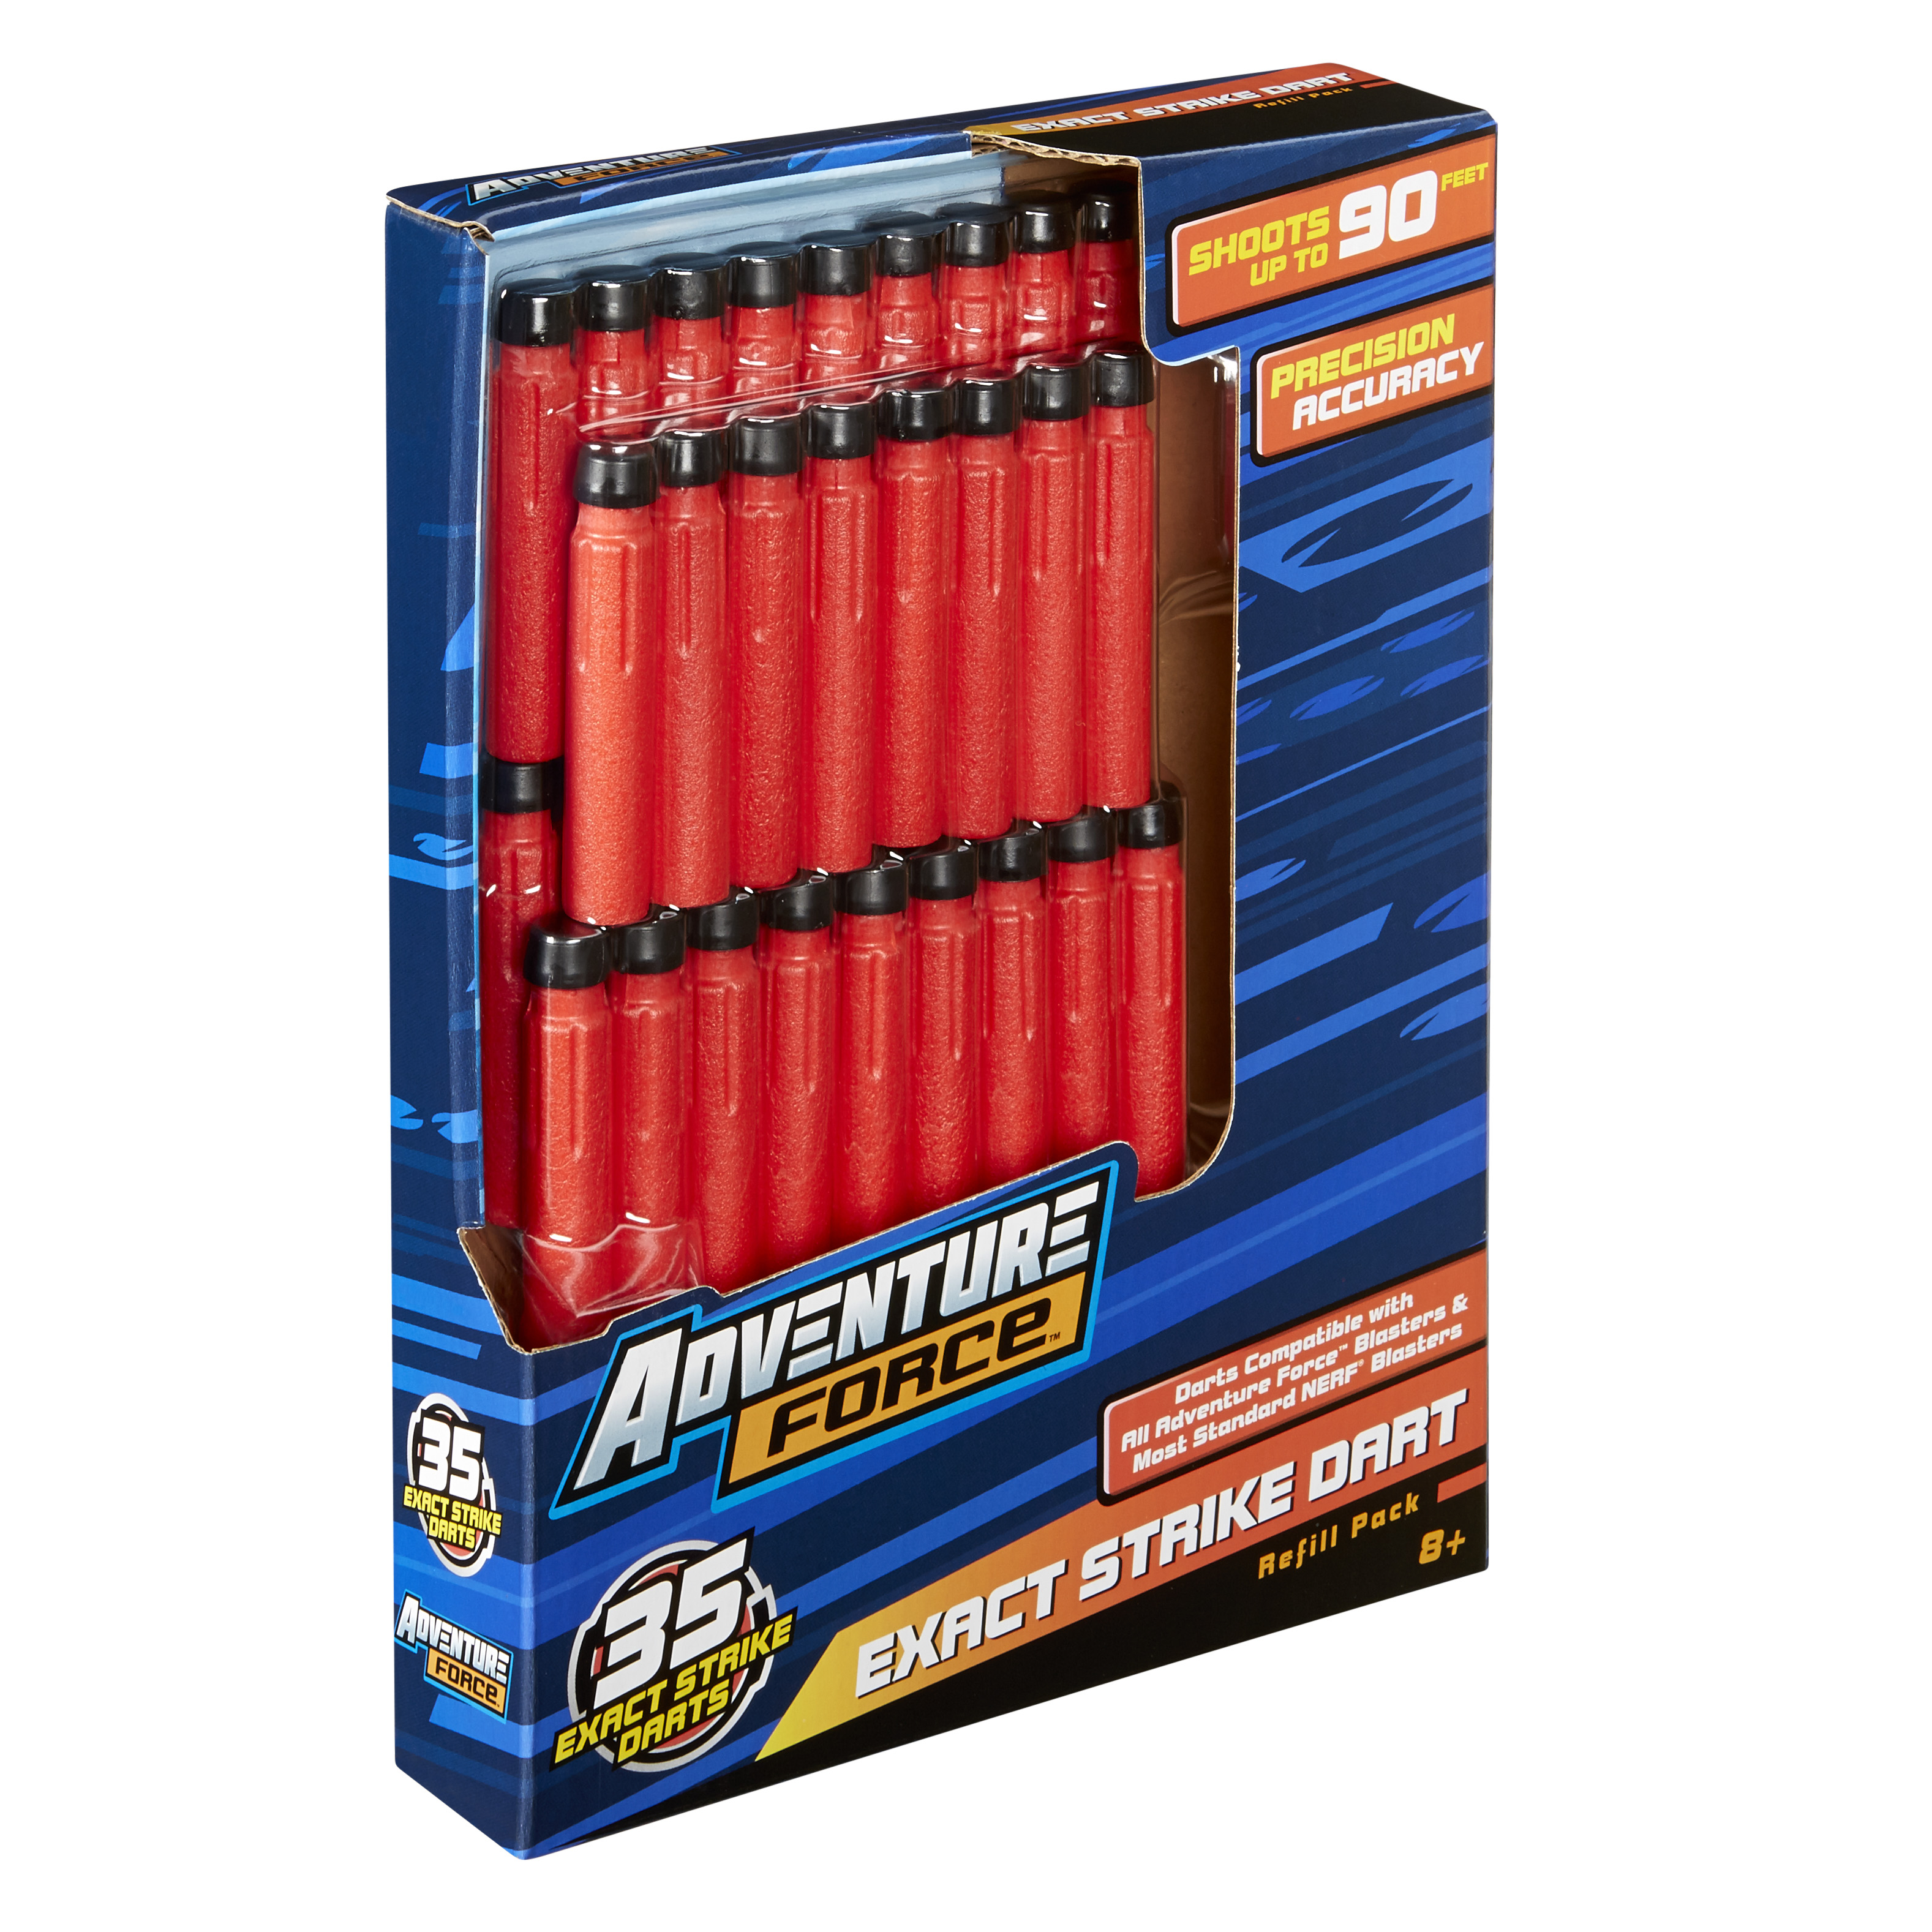 Adventure Force Af 35 Exact Strike Dart Refills